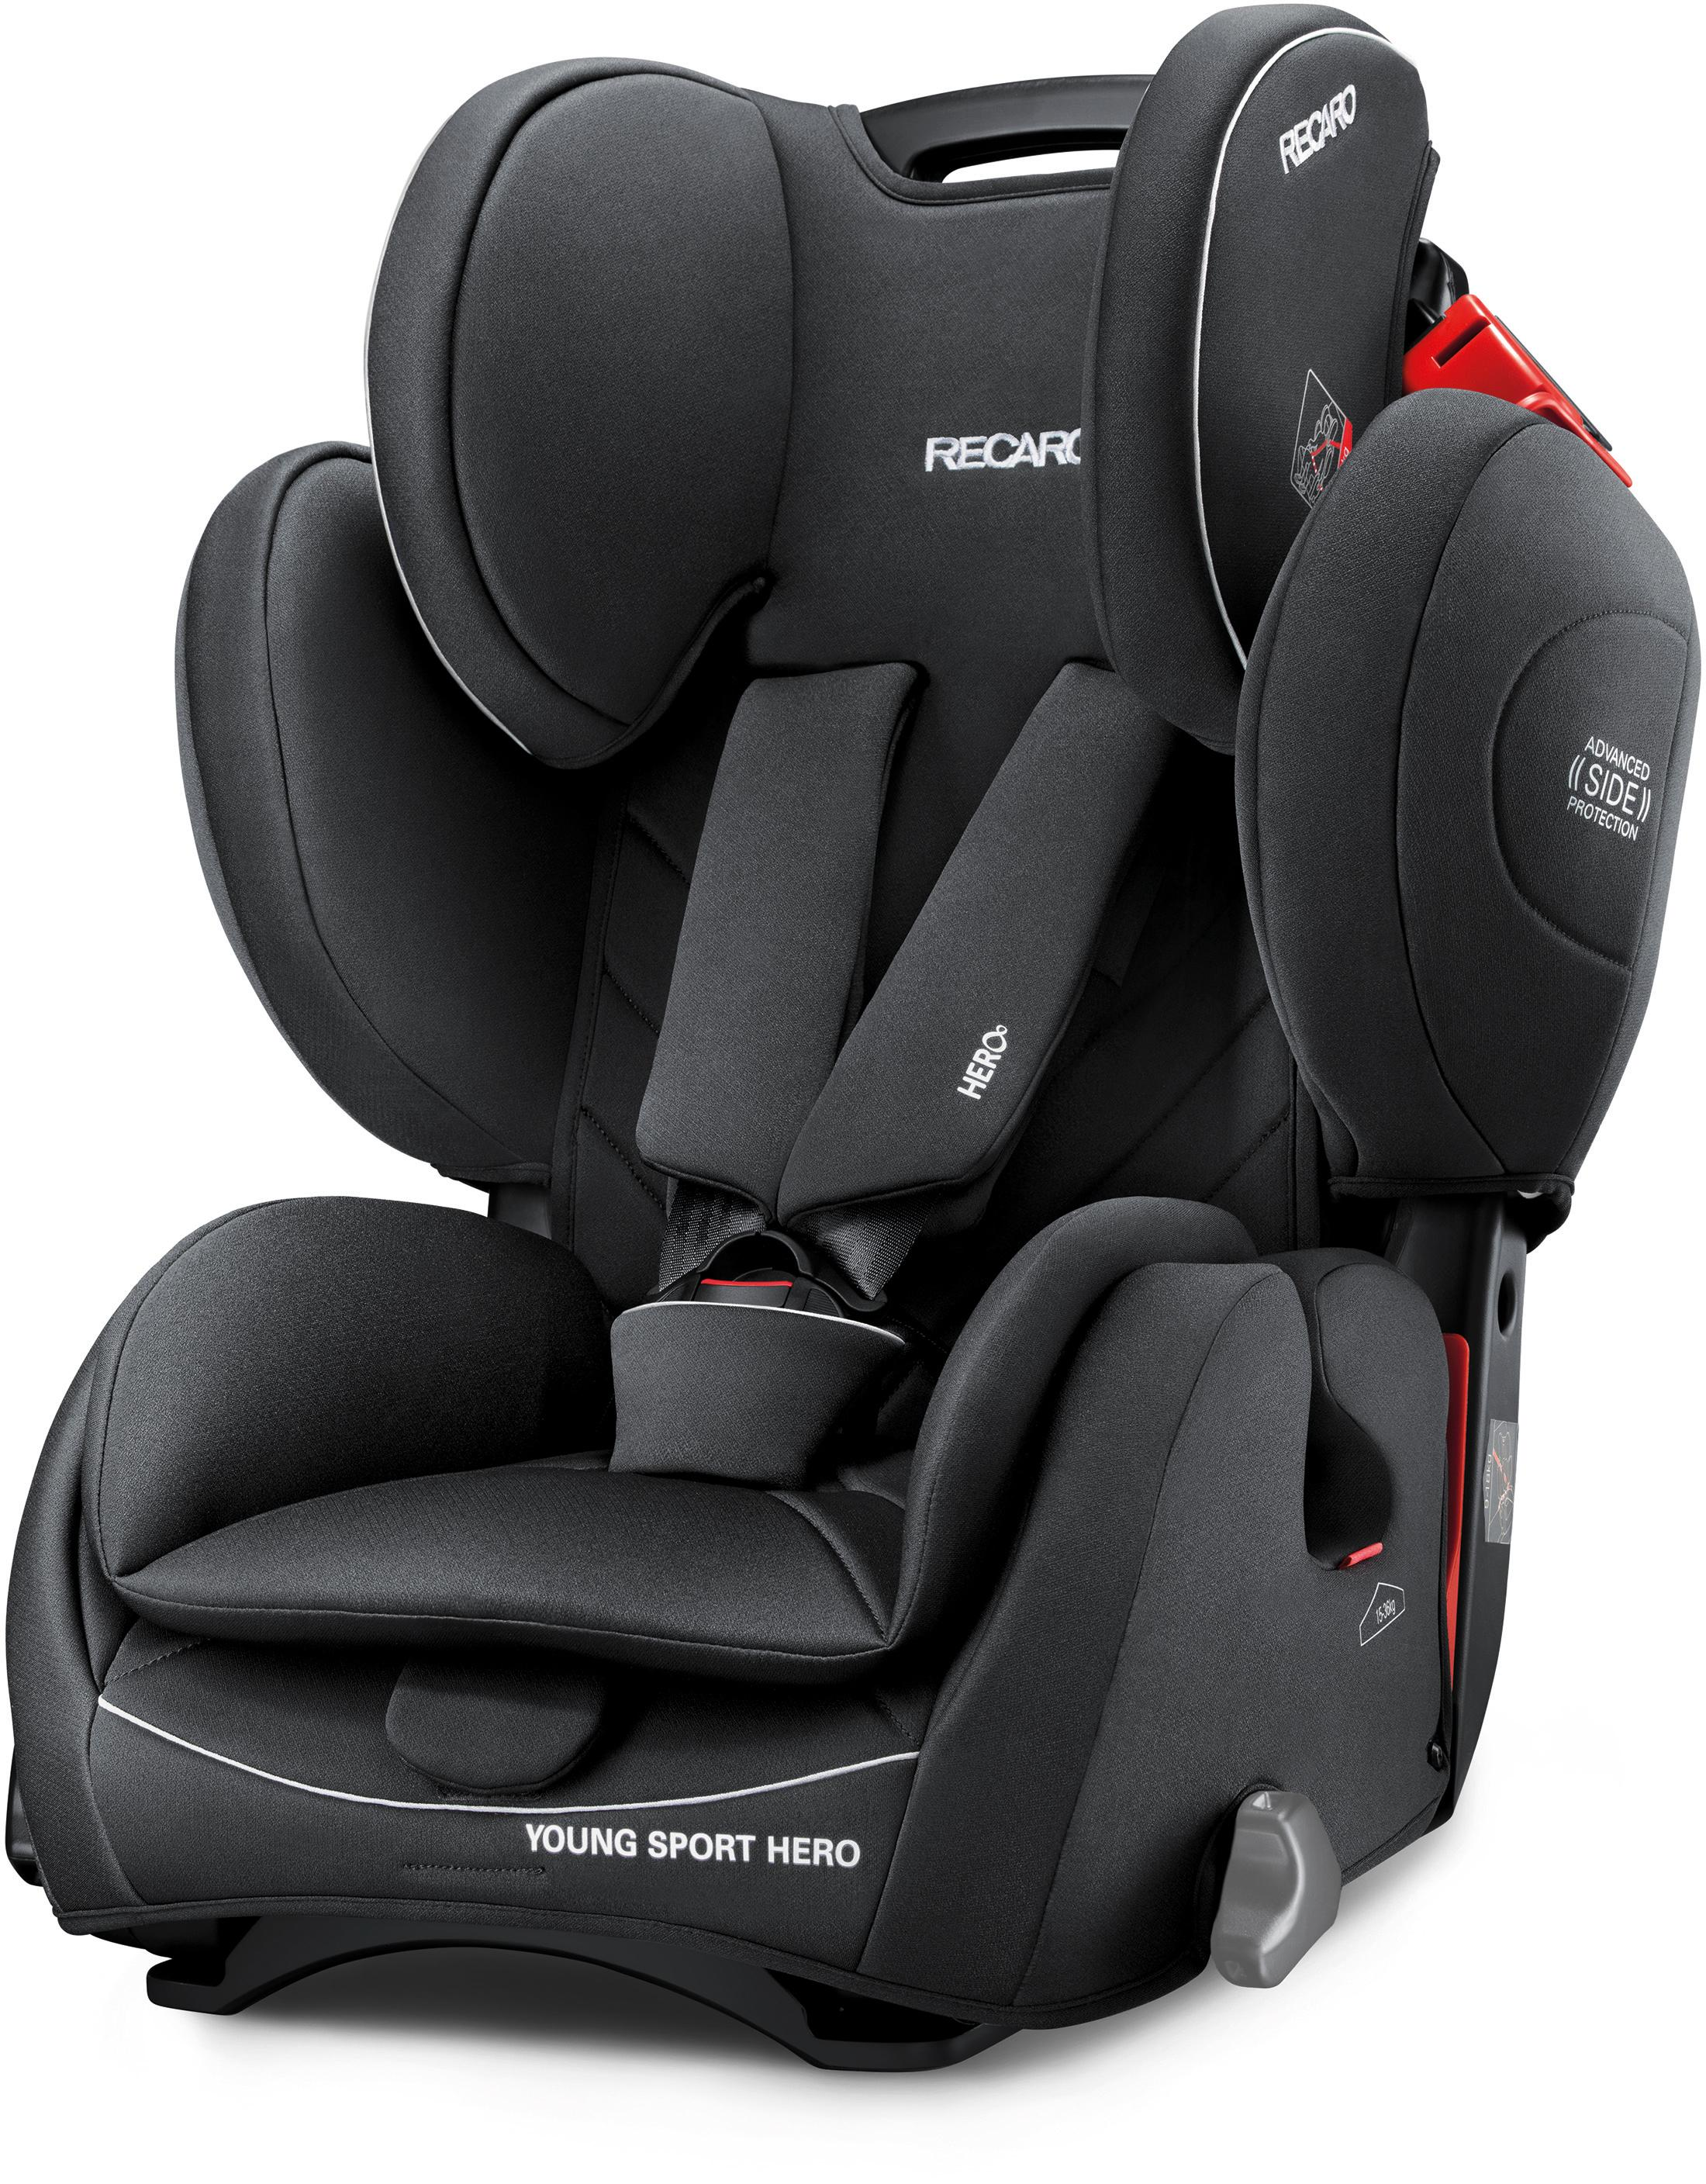 Beau Recaro Young Sport Hero Child Car Seat